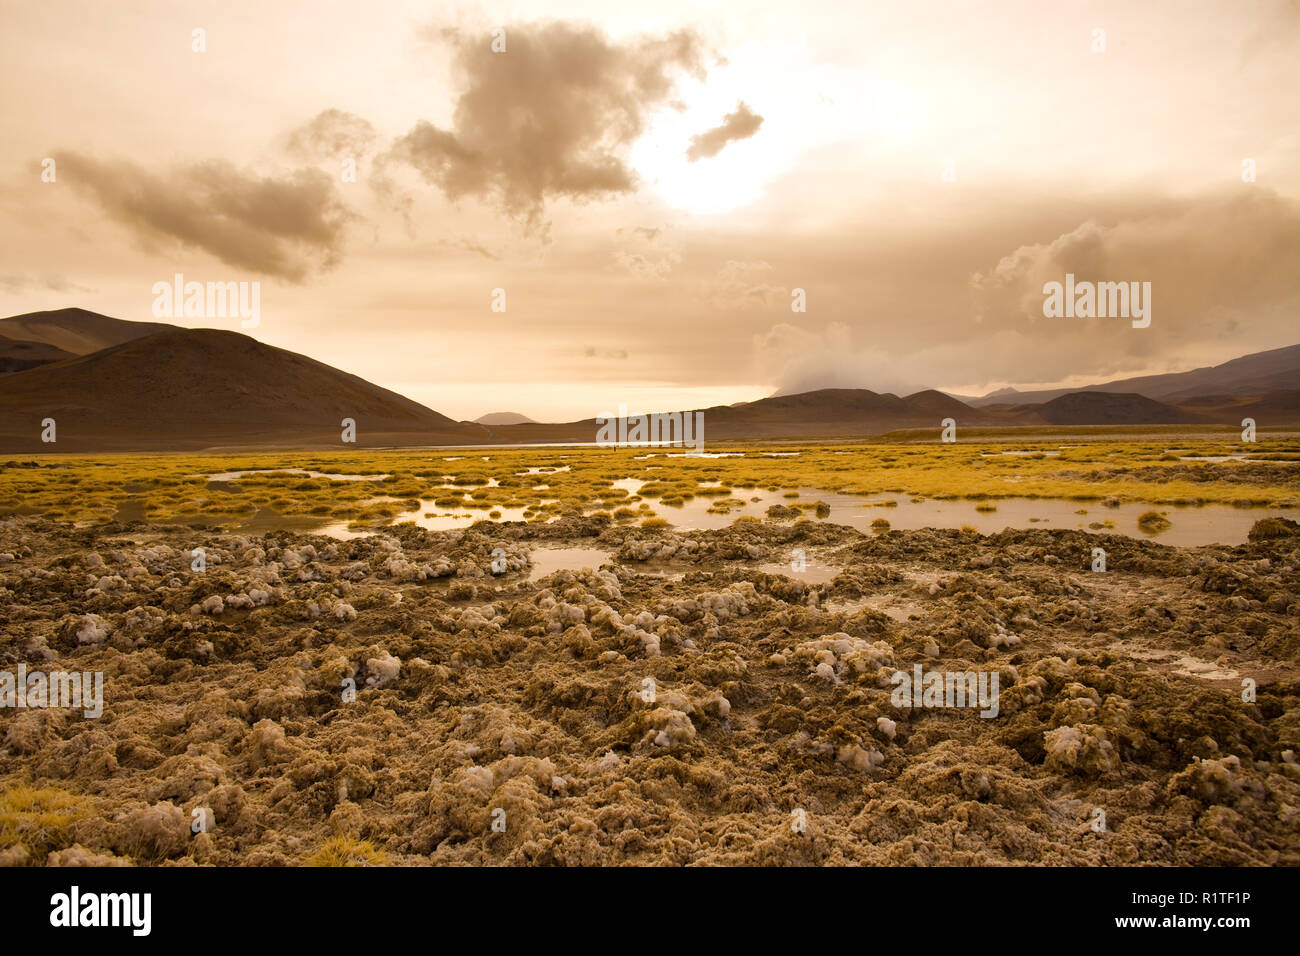 Salt crust at the shore of Lagoon and salt lake Tuyajto at an altitude of 4300m, Altiplano (high Andean Plateau), Los Flamencos National Reserve, Atac - Stock Image